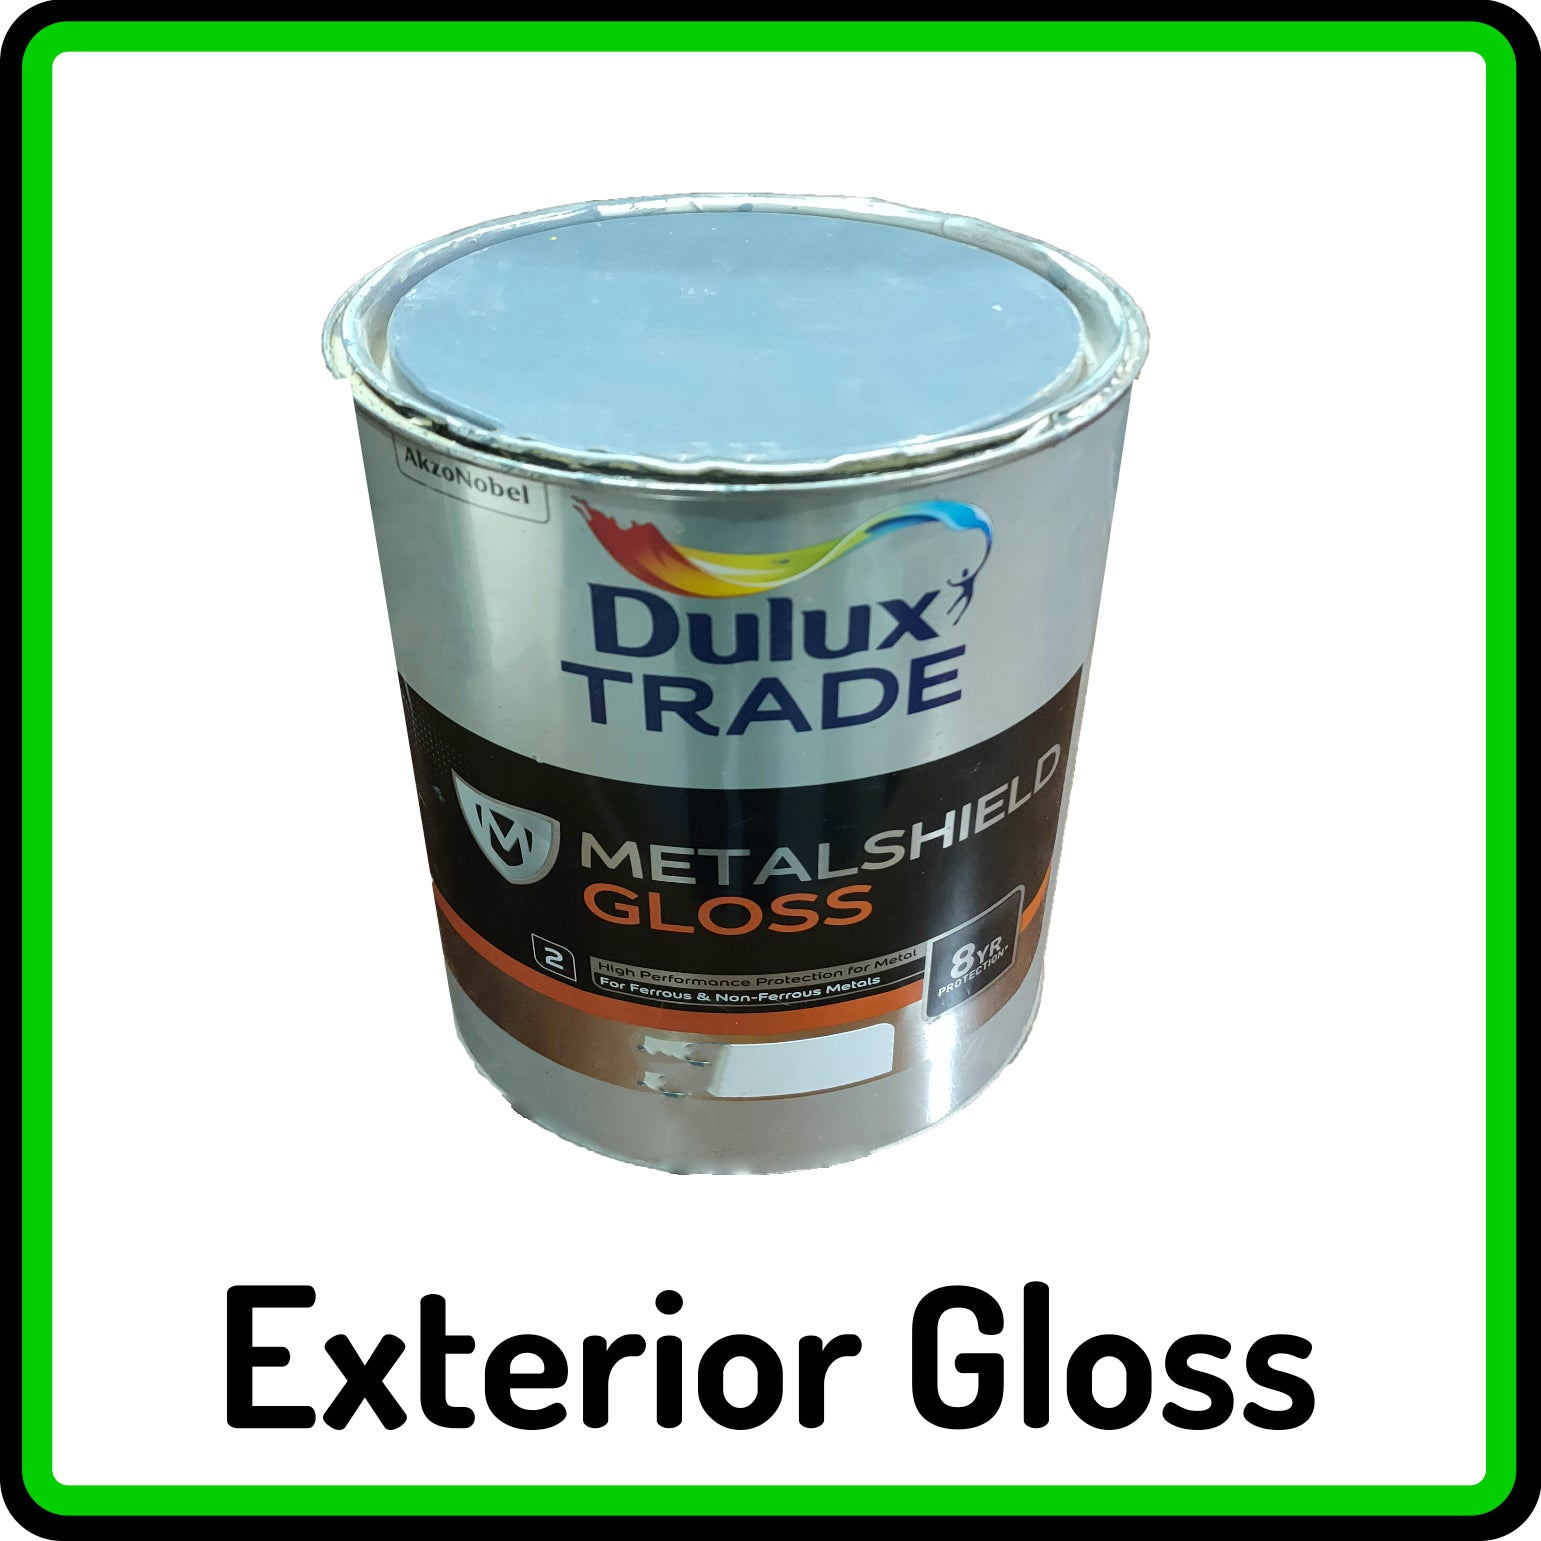 View our selection of Exterior Gloss Paints